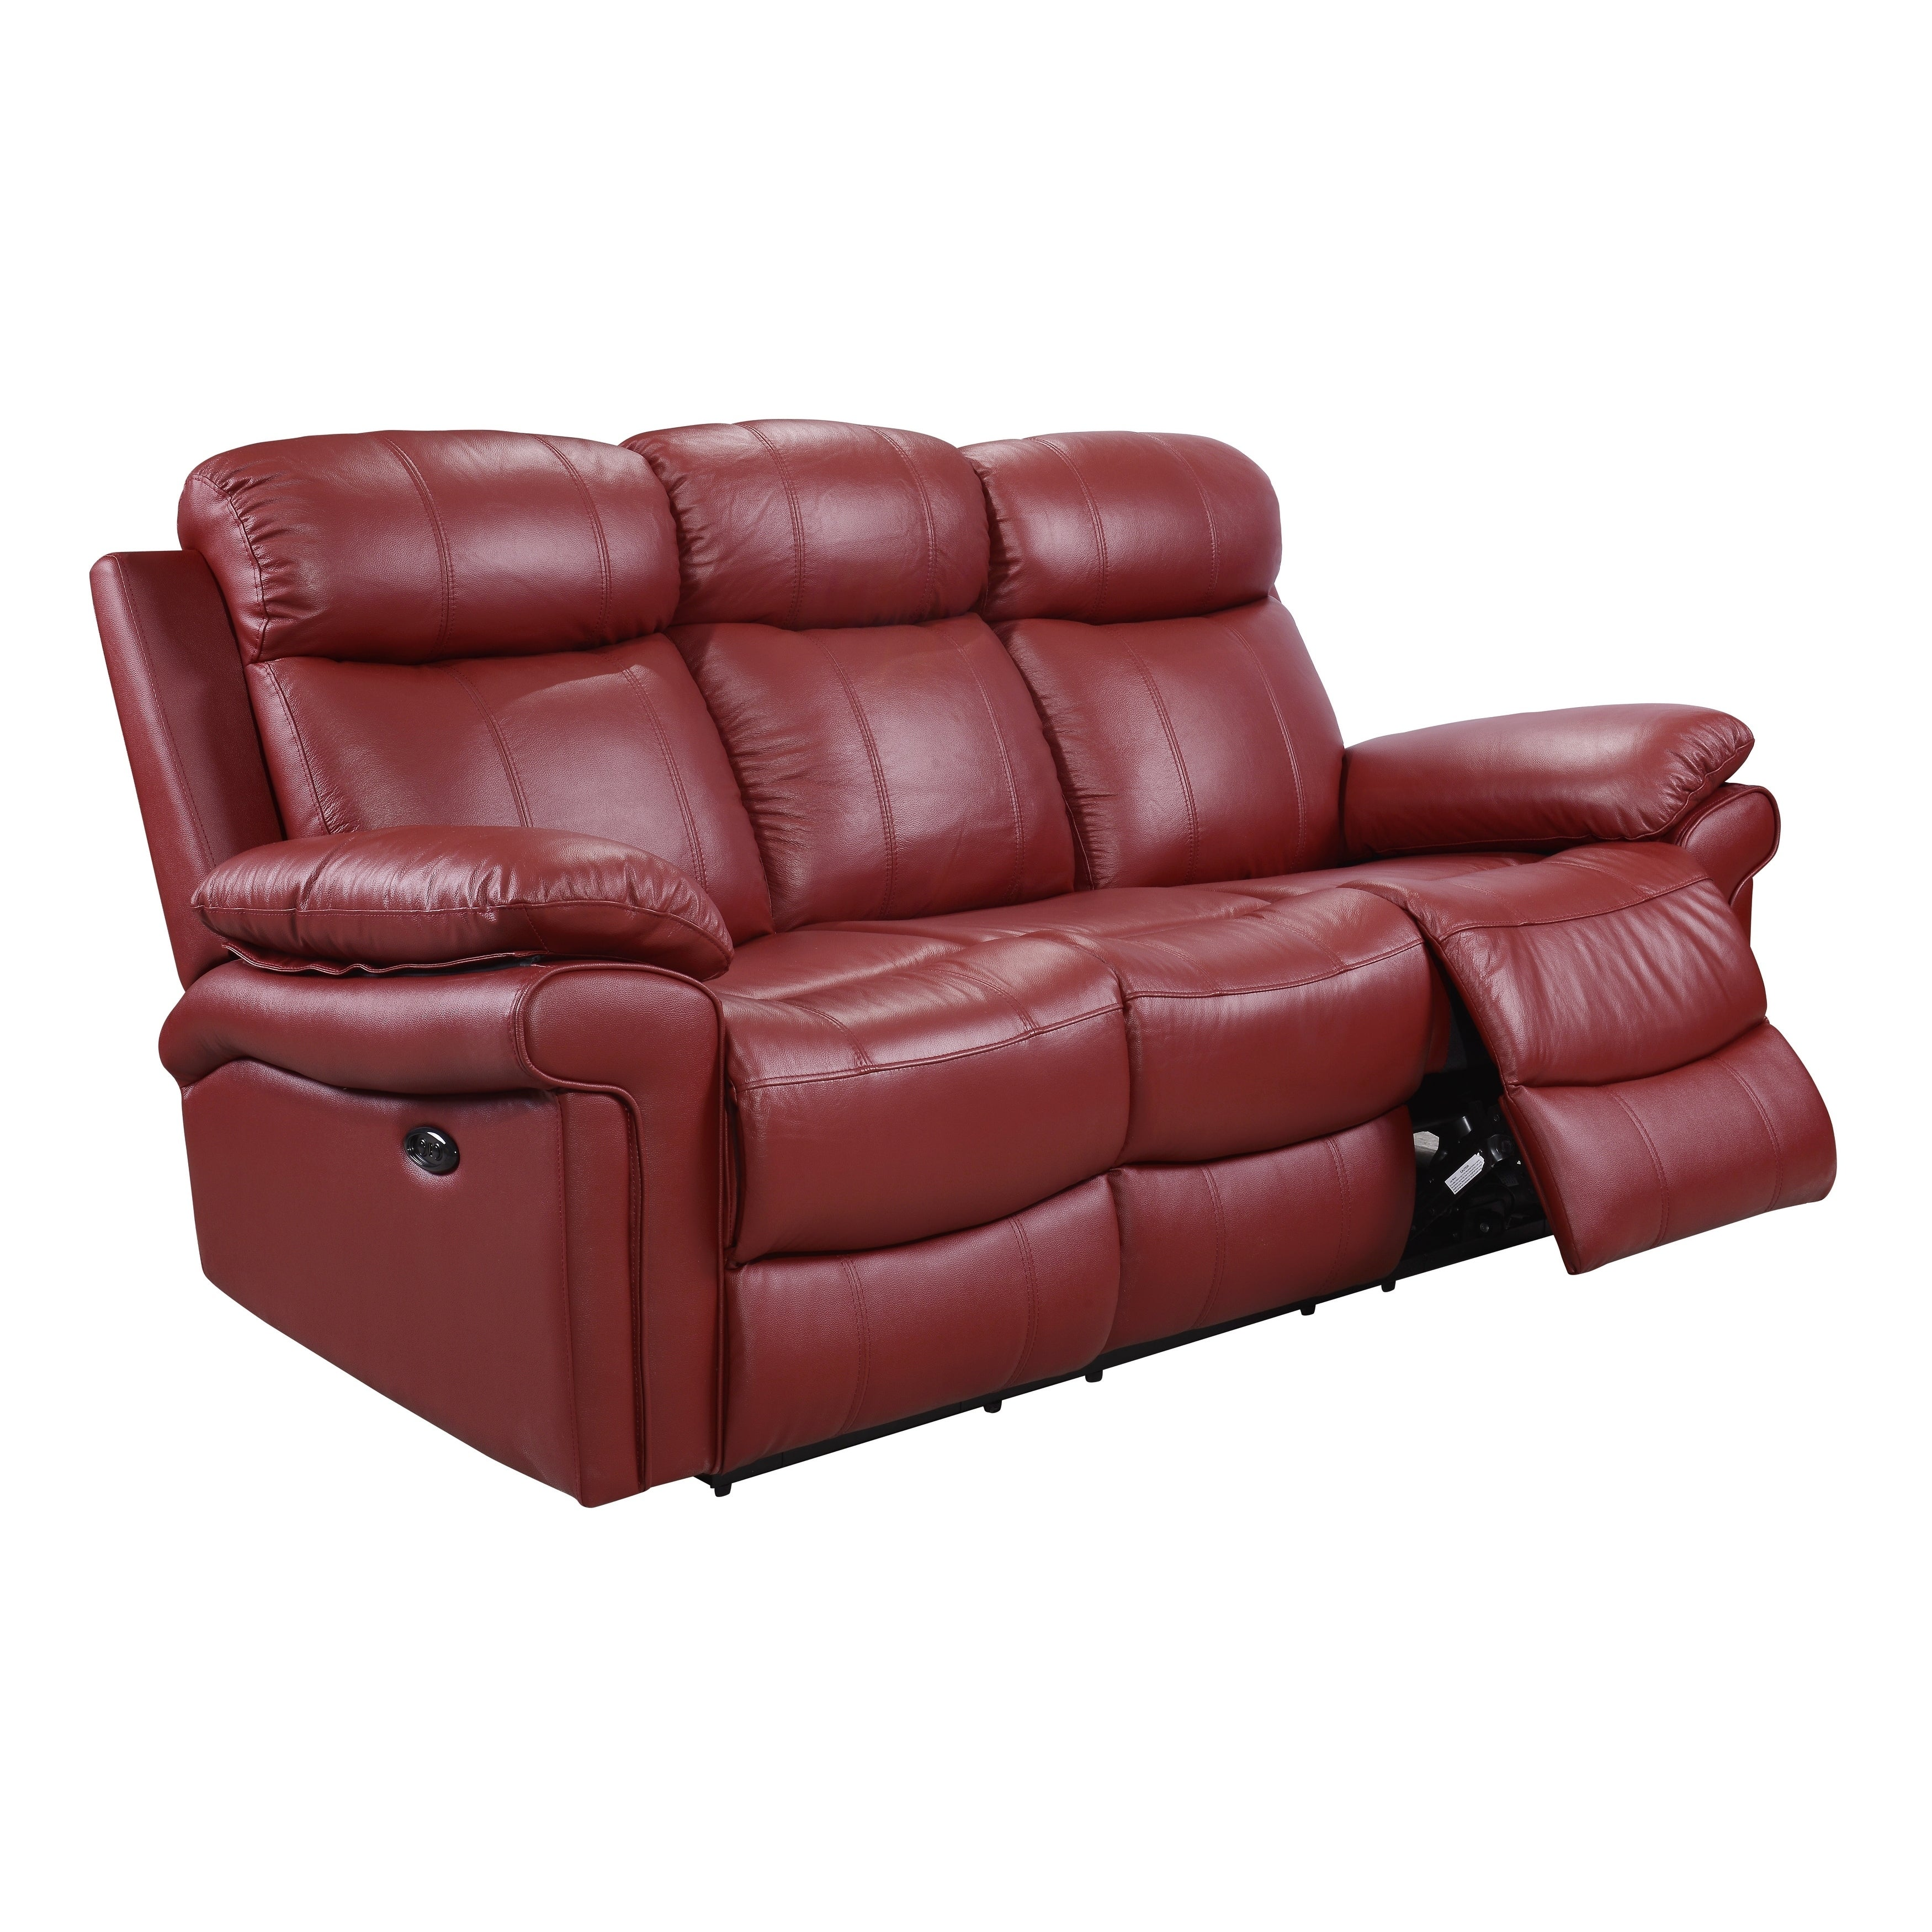 Hudson Power Reclining Top Grain Leather Sofa (Brown/ Blue/ Red) (2